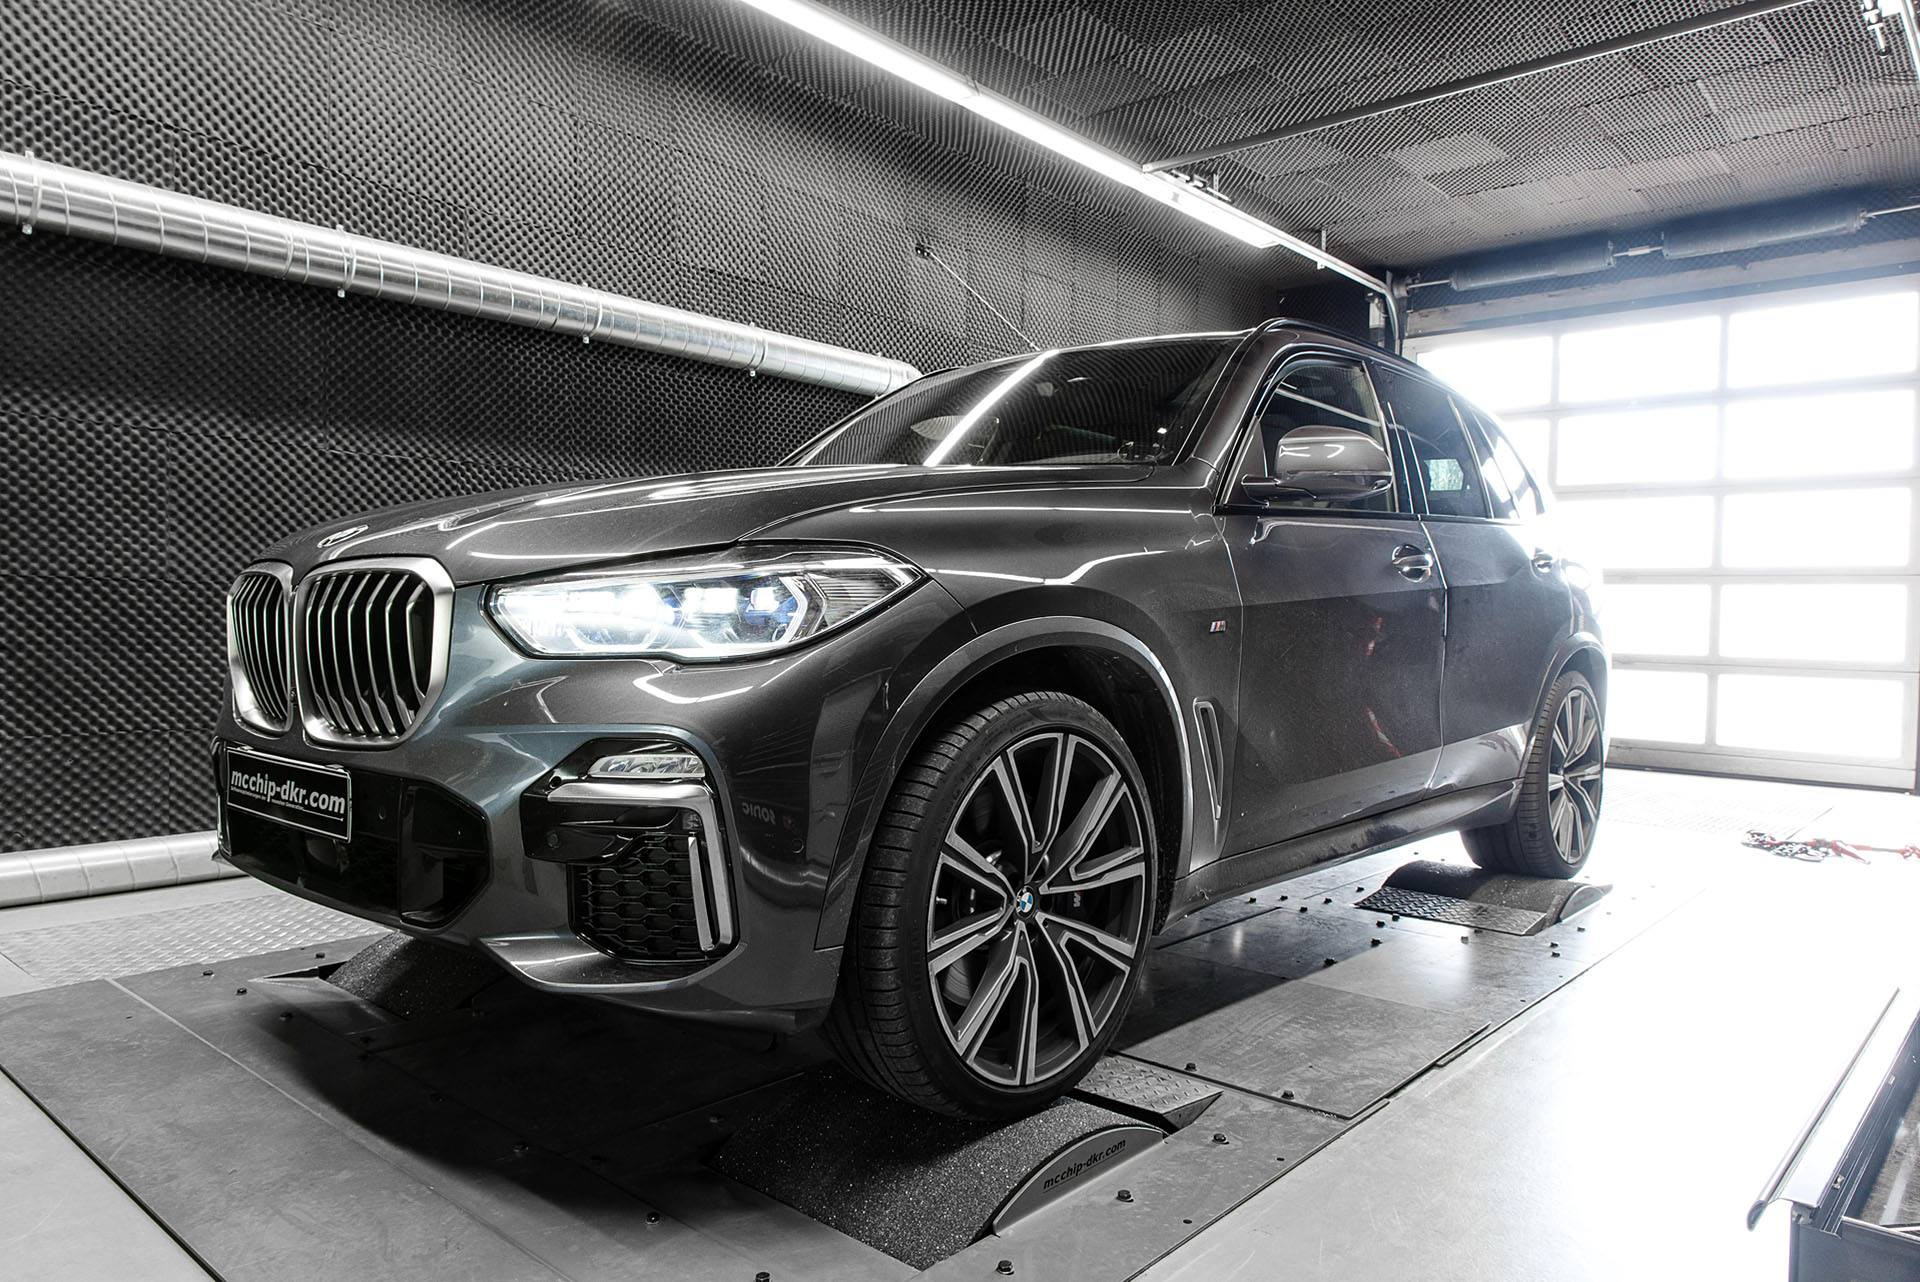 2019 bmw x5 m50d chip tuning takes quad turbo to 515 hp. Black Bedroom Furniture Sets. Home Design Ideas